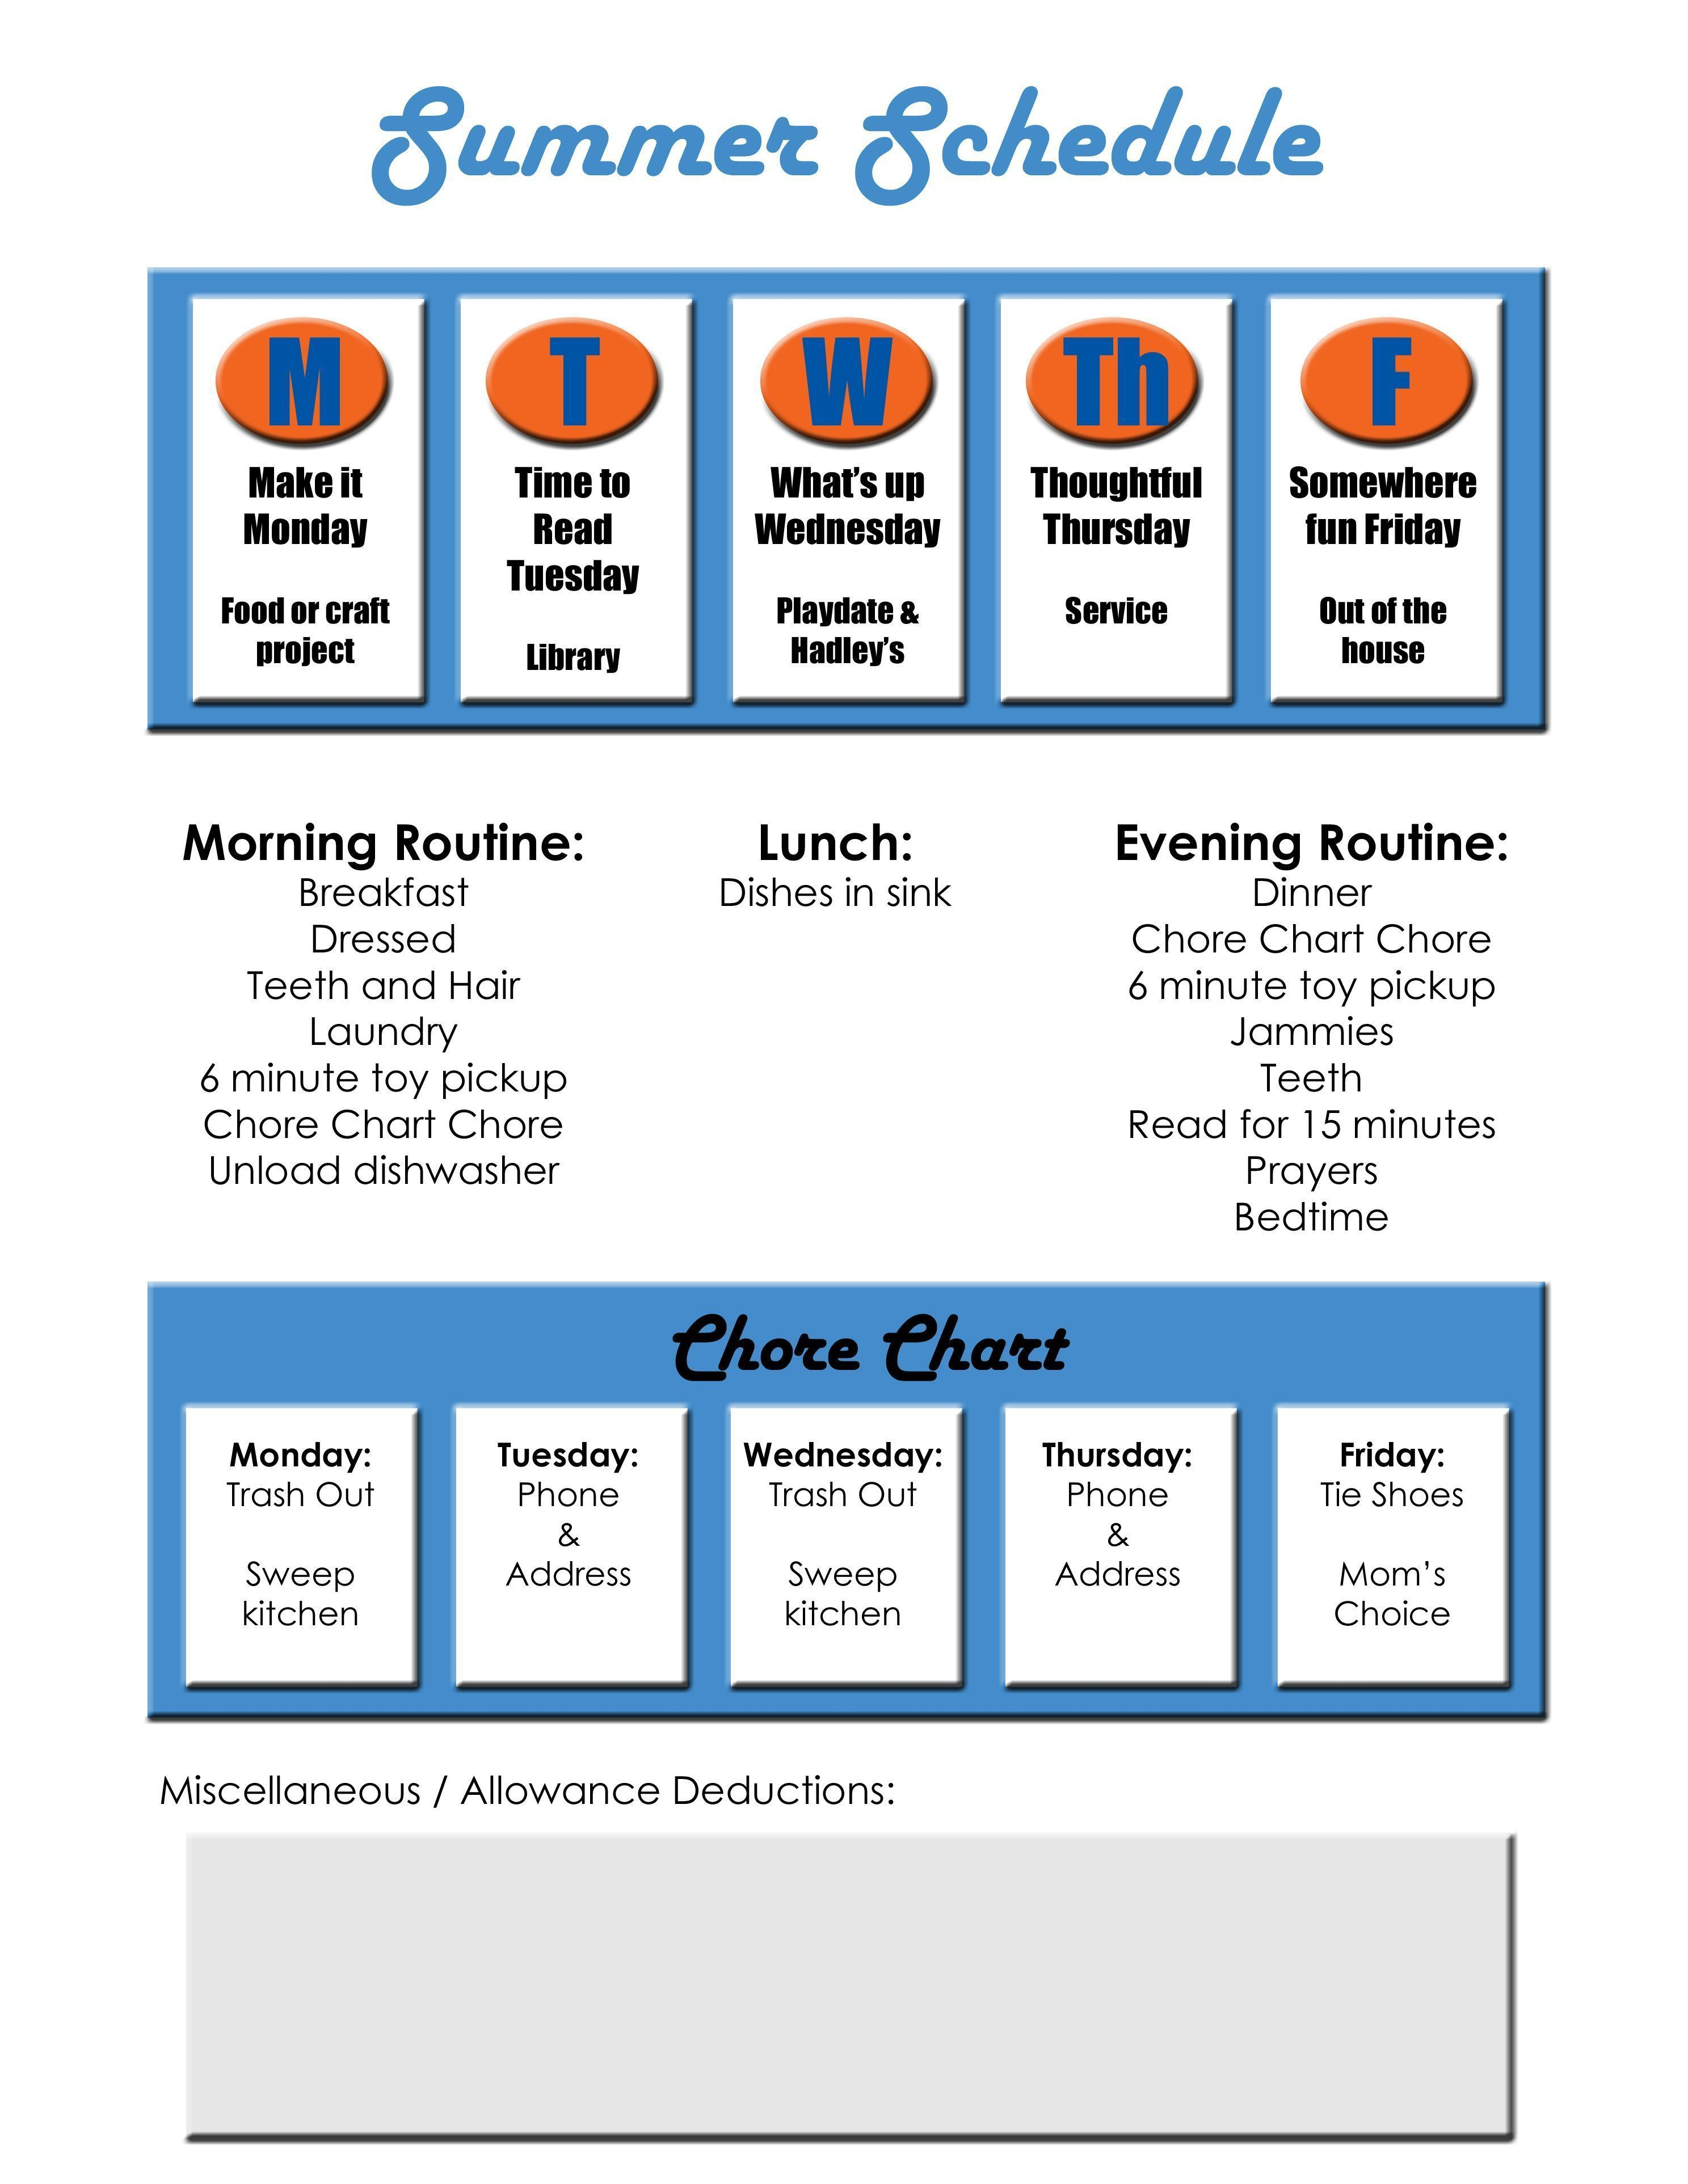 Summer schedule / chore chart - have to remember to teach ...